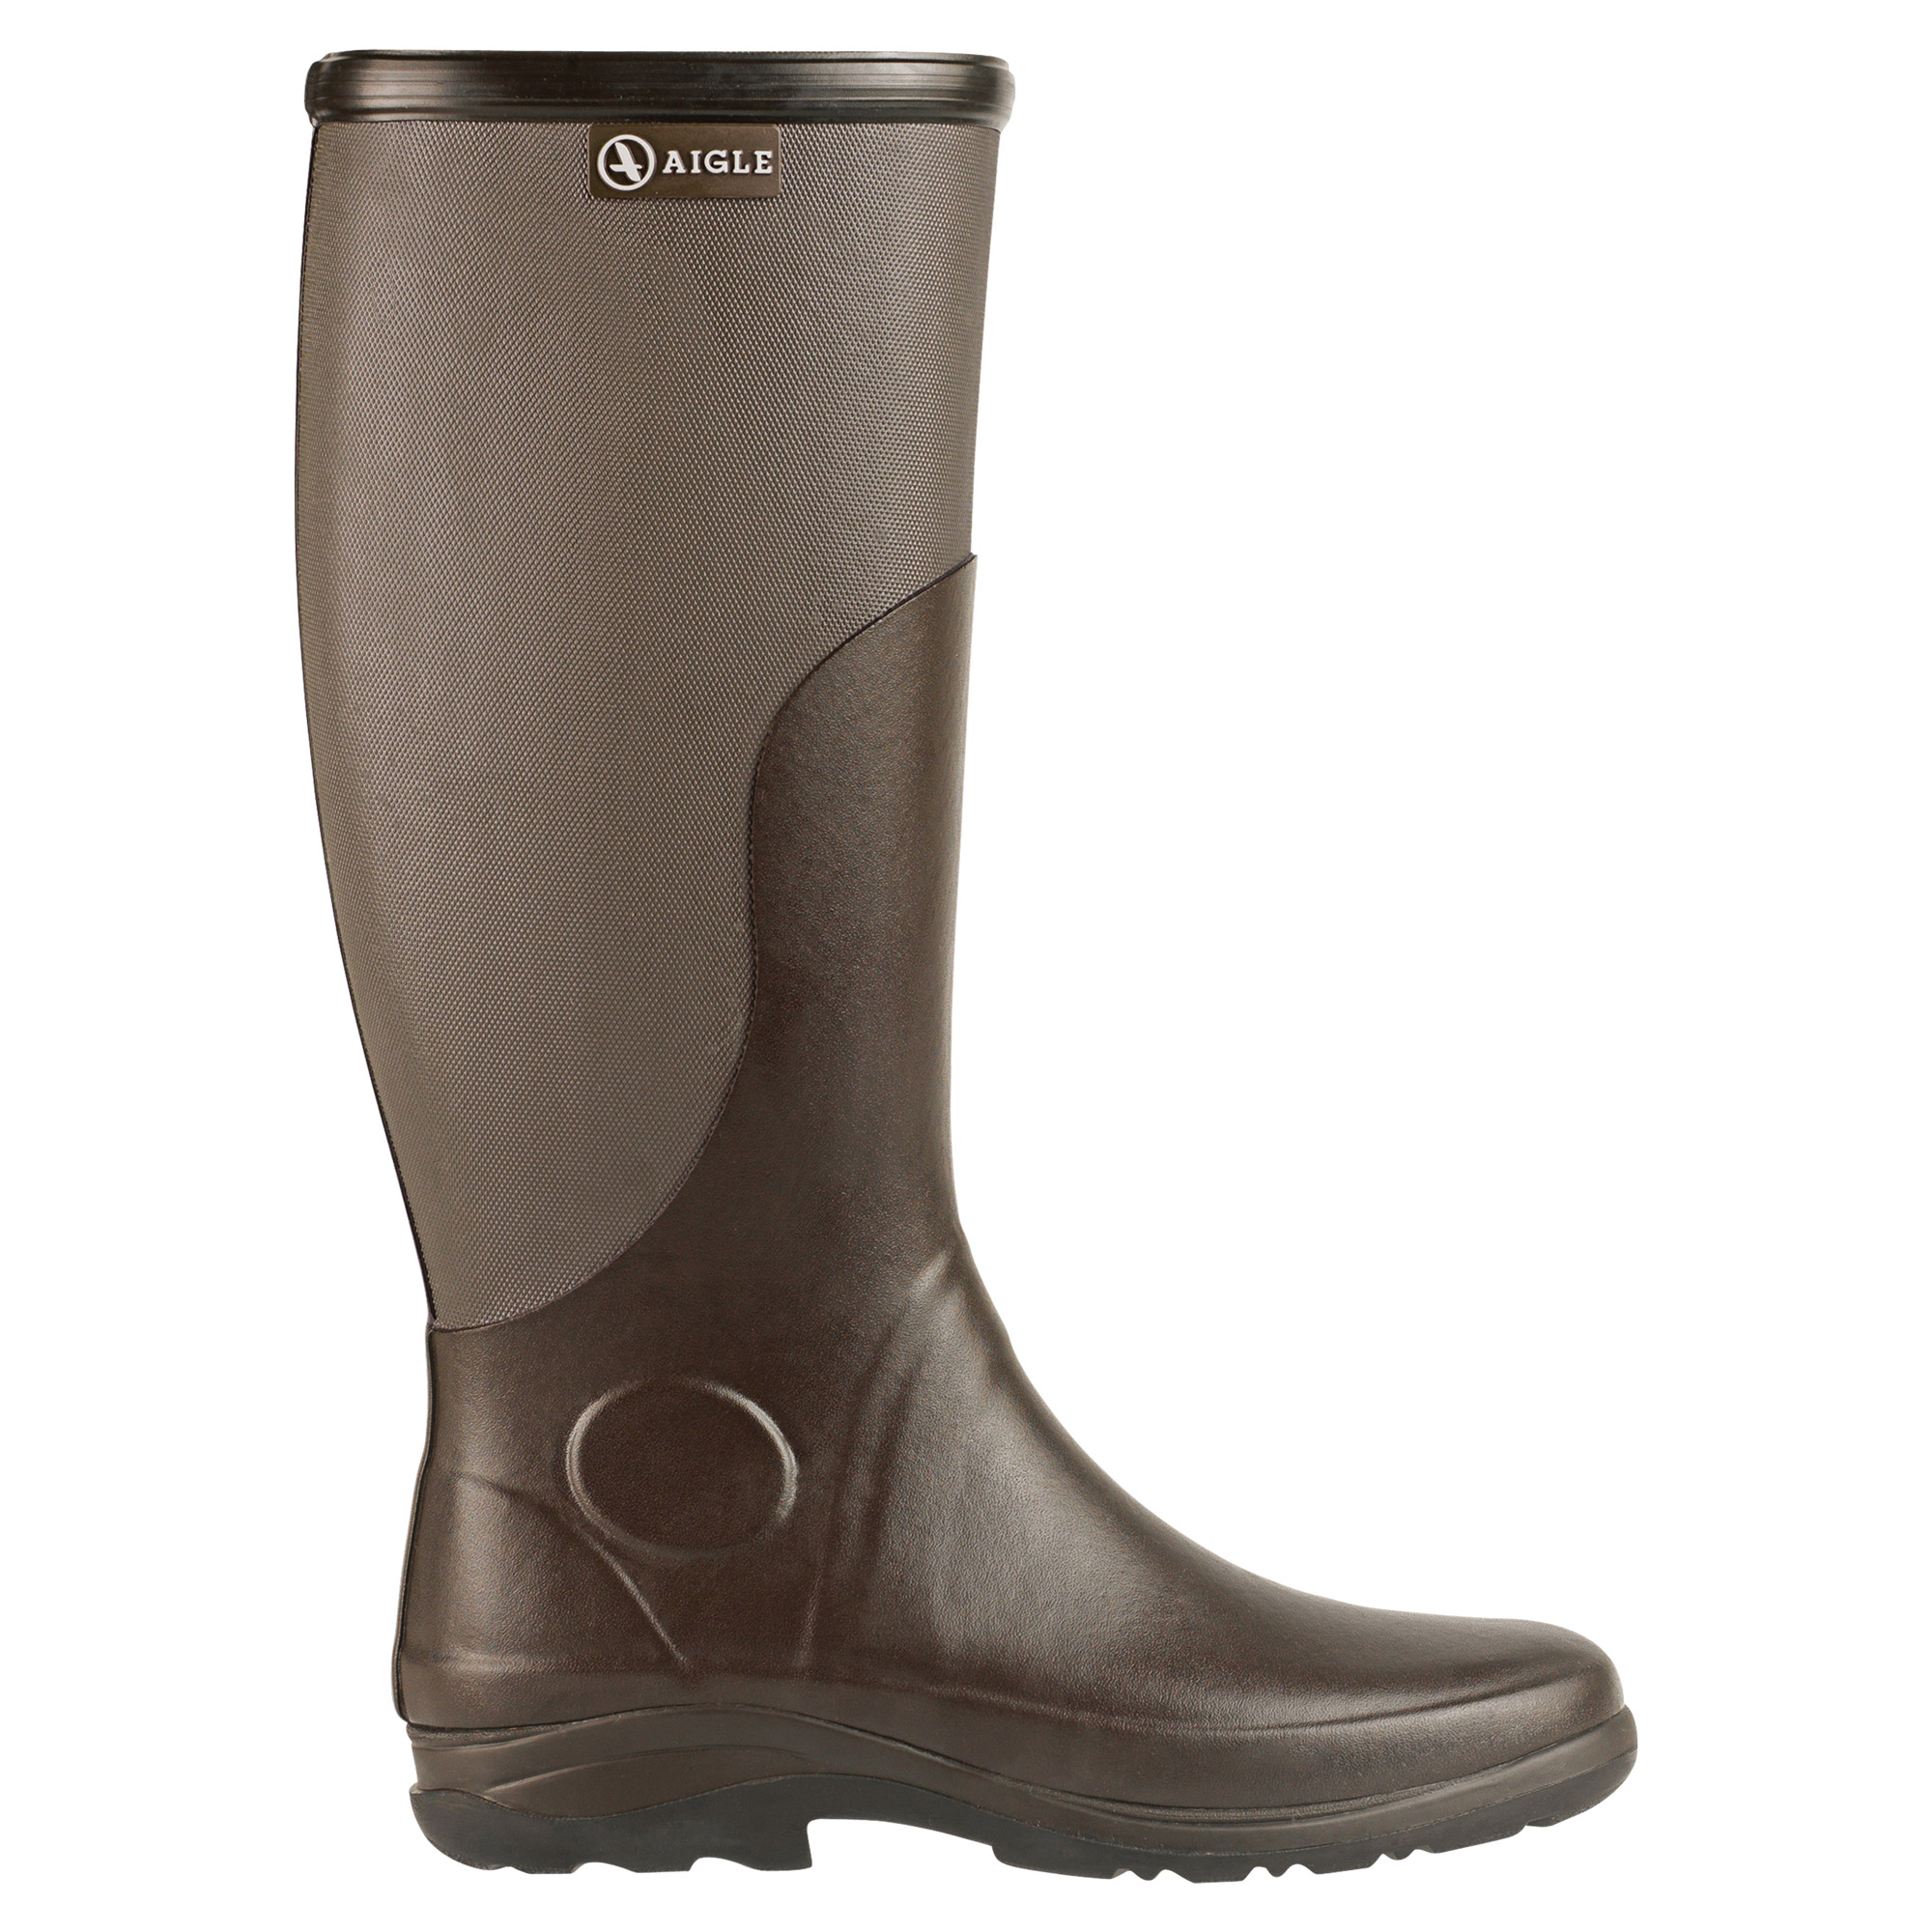 Aigle Rboot Gummistiefel in braun, taupe